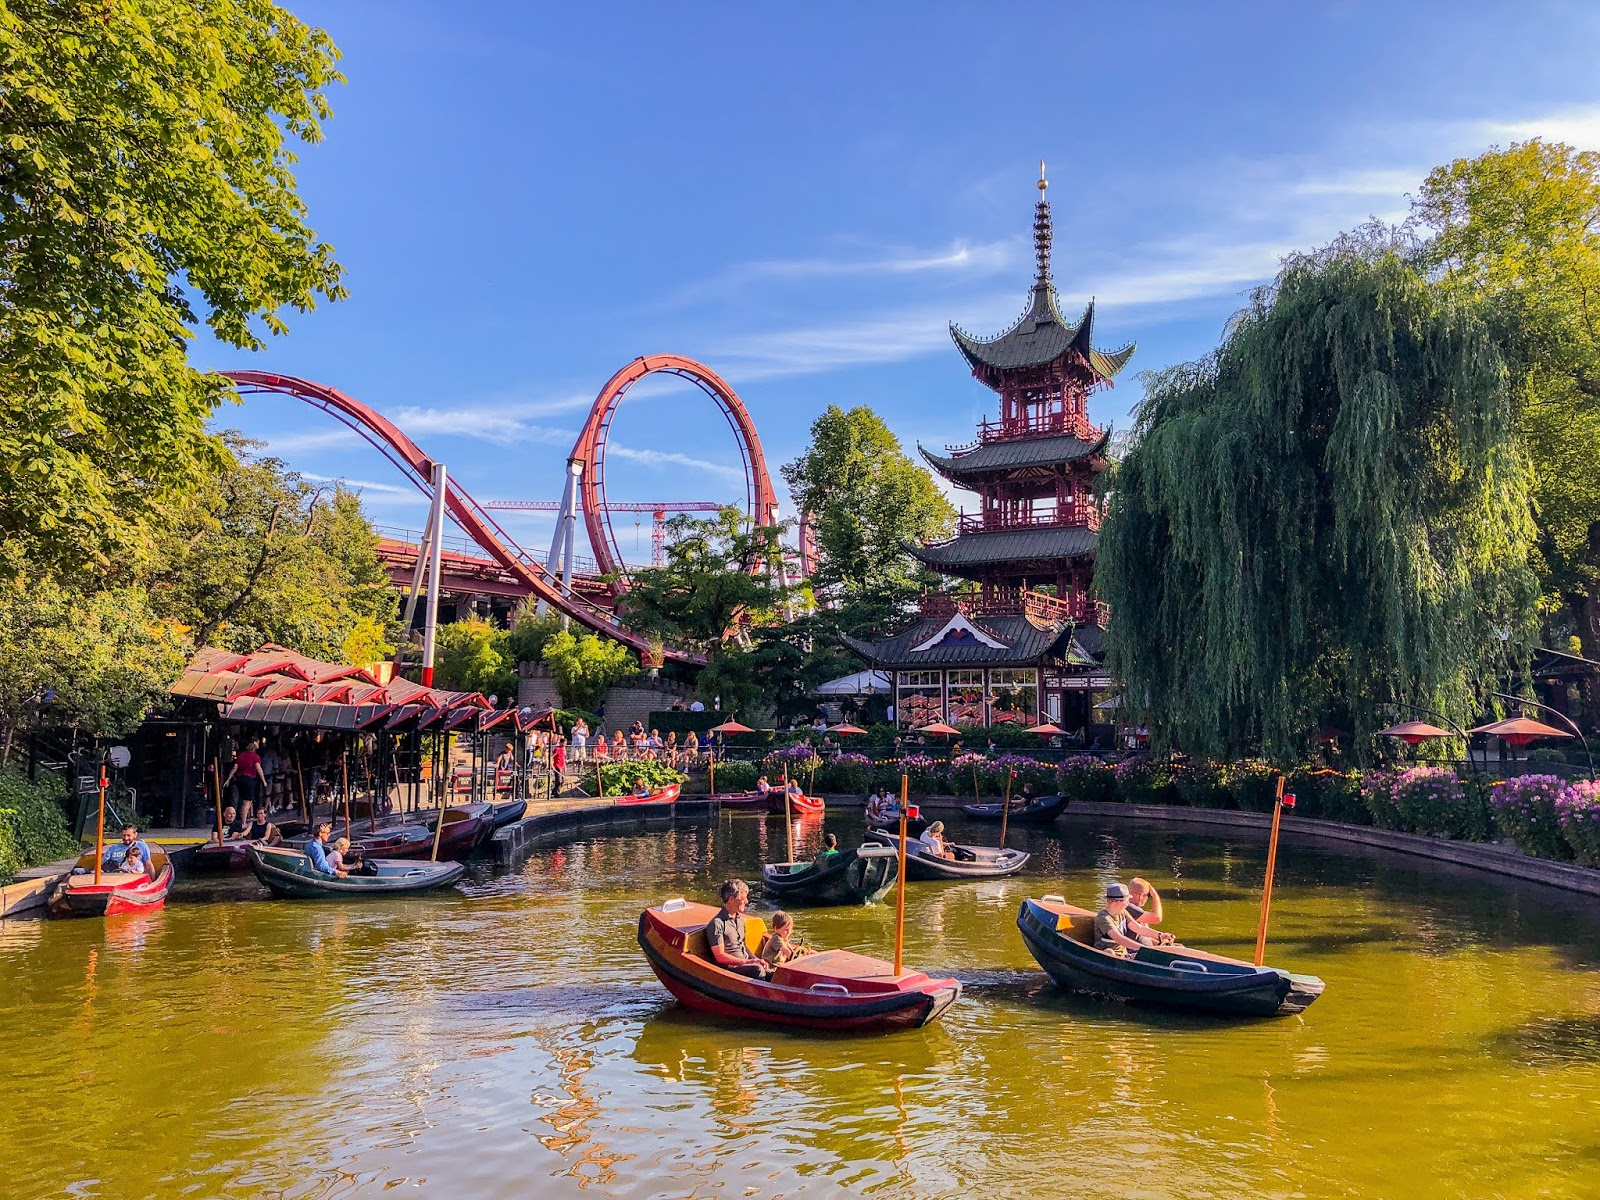 Chinese section of Tivoli amusement park gardens in Copenhagen with traditional Chinese architecture, lake, boats and rollercoaster in background